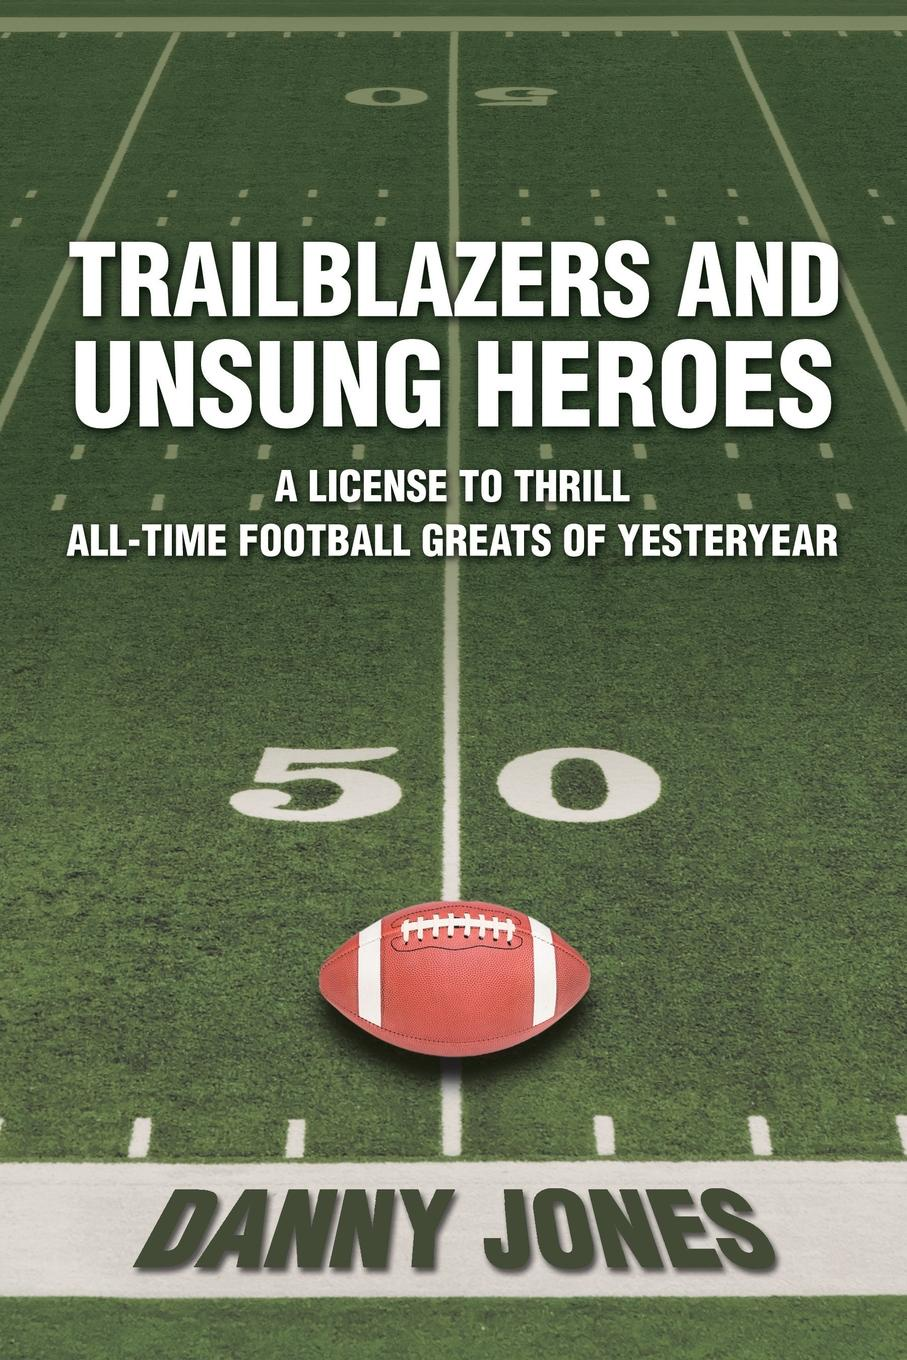 Danny Jones Trailblazers and Unsung Heroes. A License to Thrill All-Time Football Greats of Yesteryear